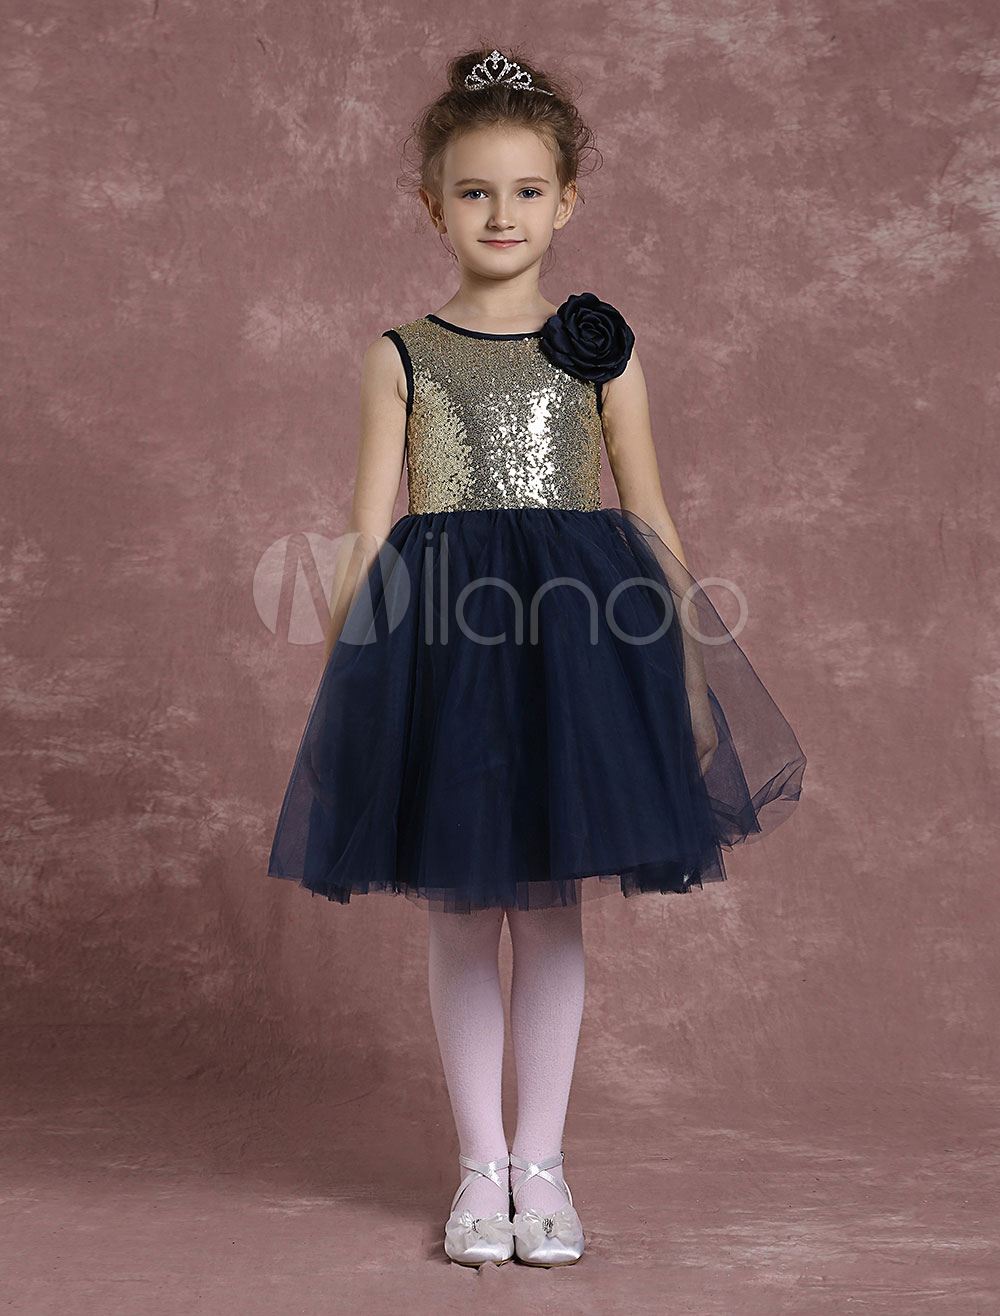 Buy Sequined Flower Girl Dresses Black Tulle Pageant Dresses Toddler's Zipper Knee Length A Line Formal Dresses With Flower for $68.39 in Milanoo store